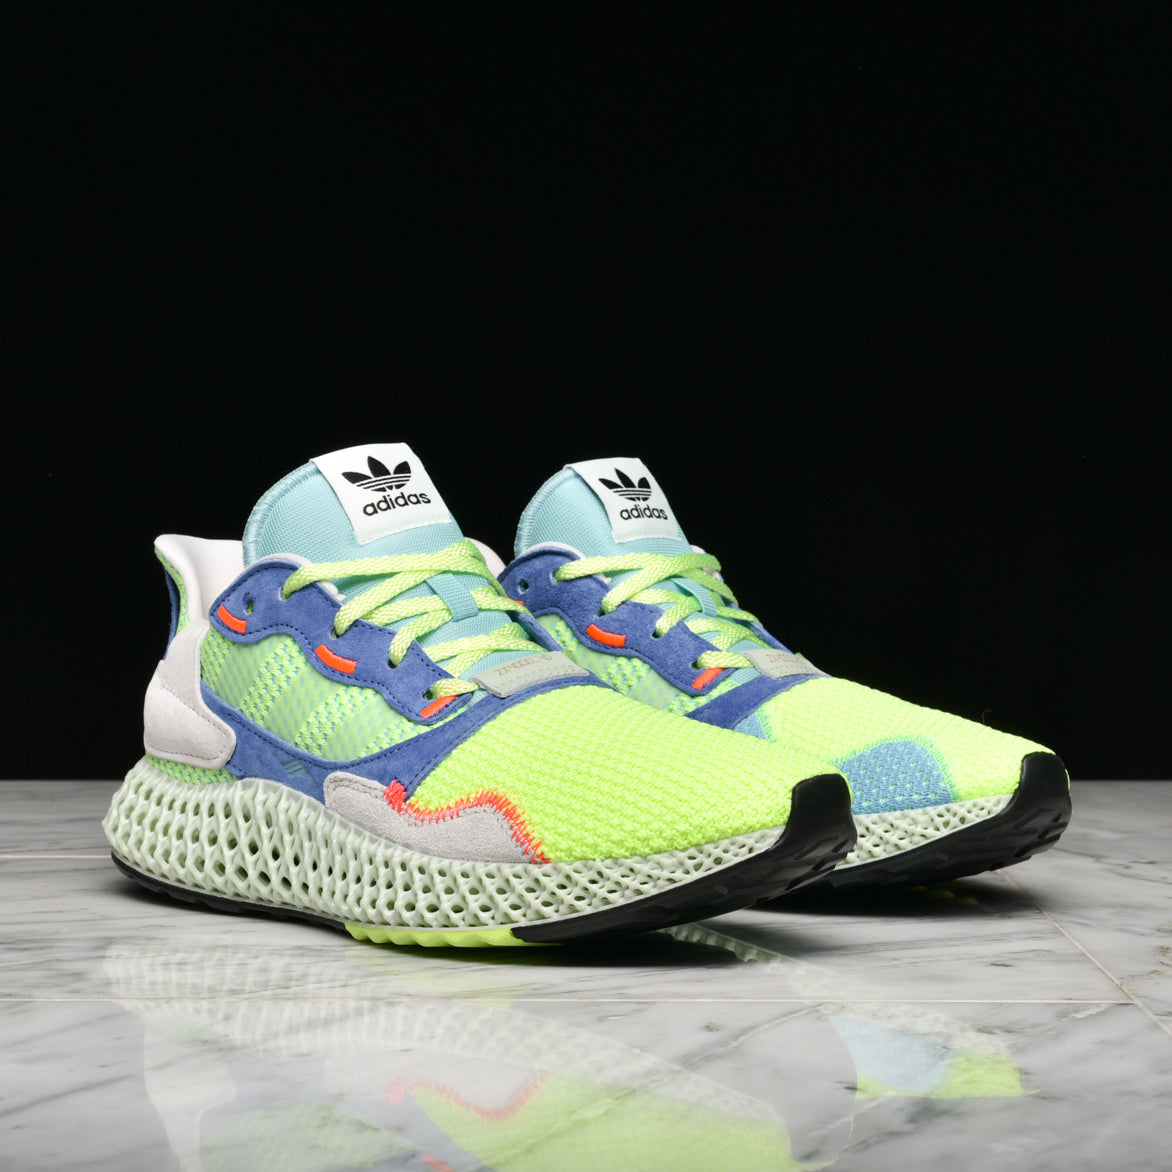 ZX 4000 4D - HI-RES YELLOW / LINEN GREEN / EASY MINT